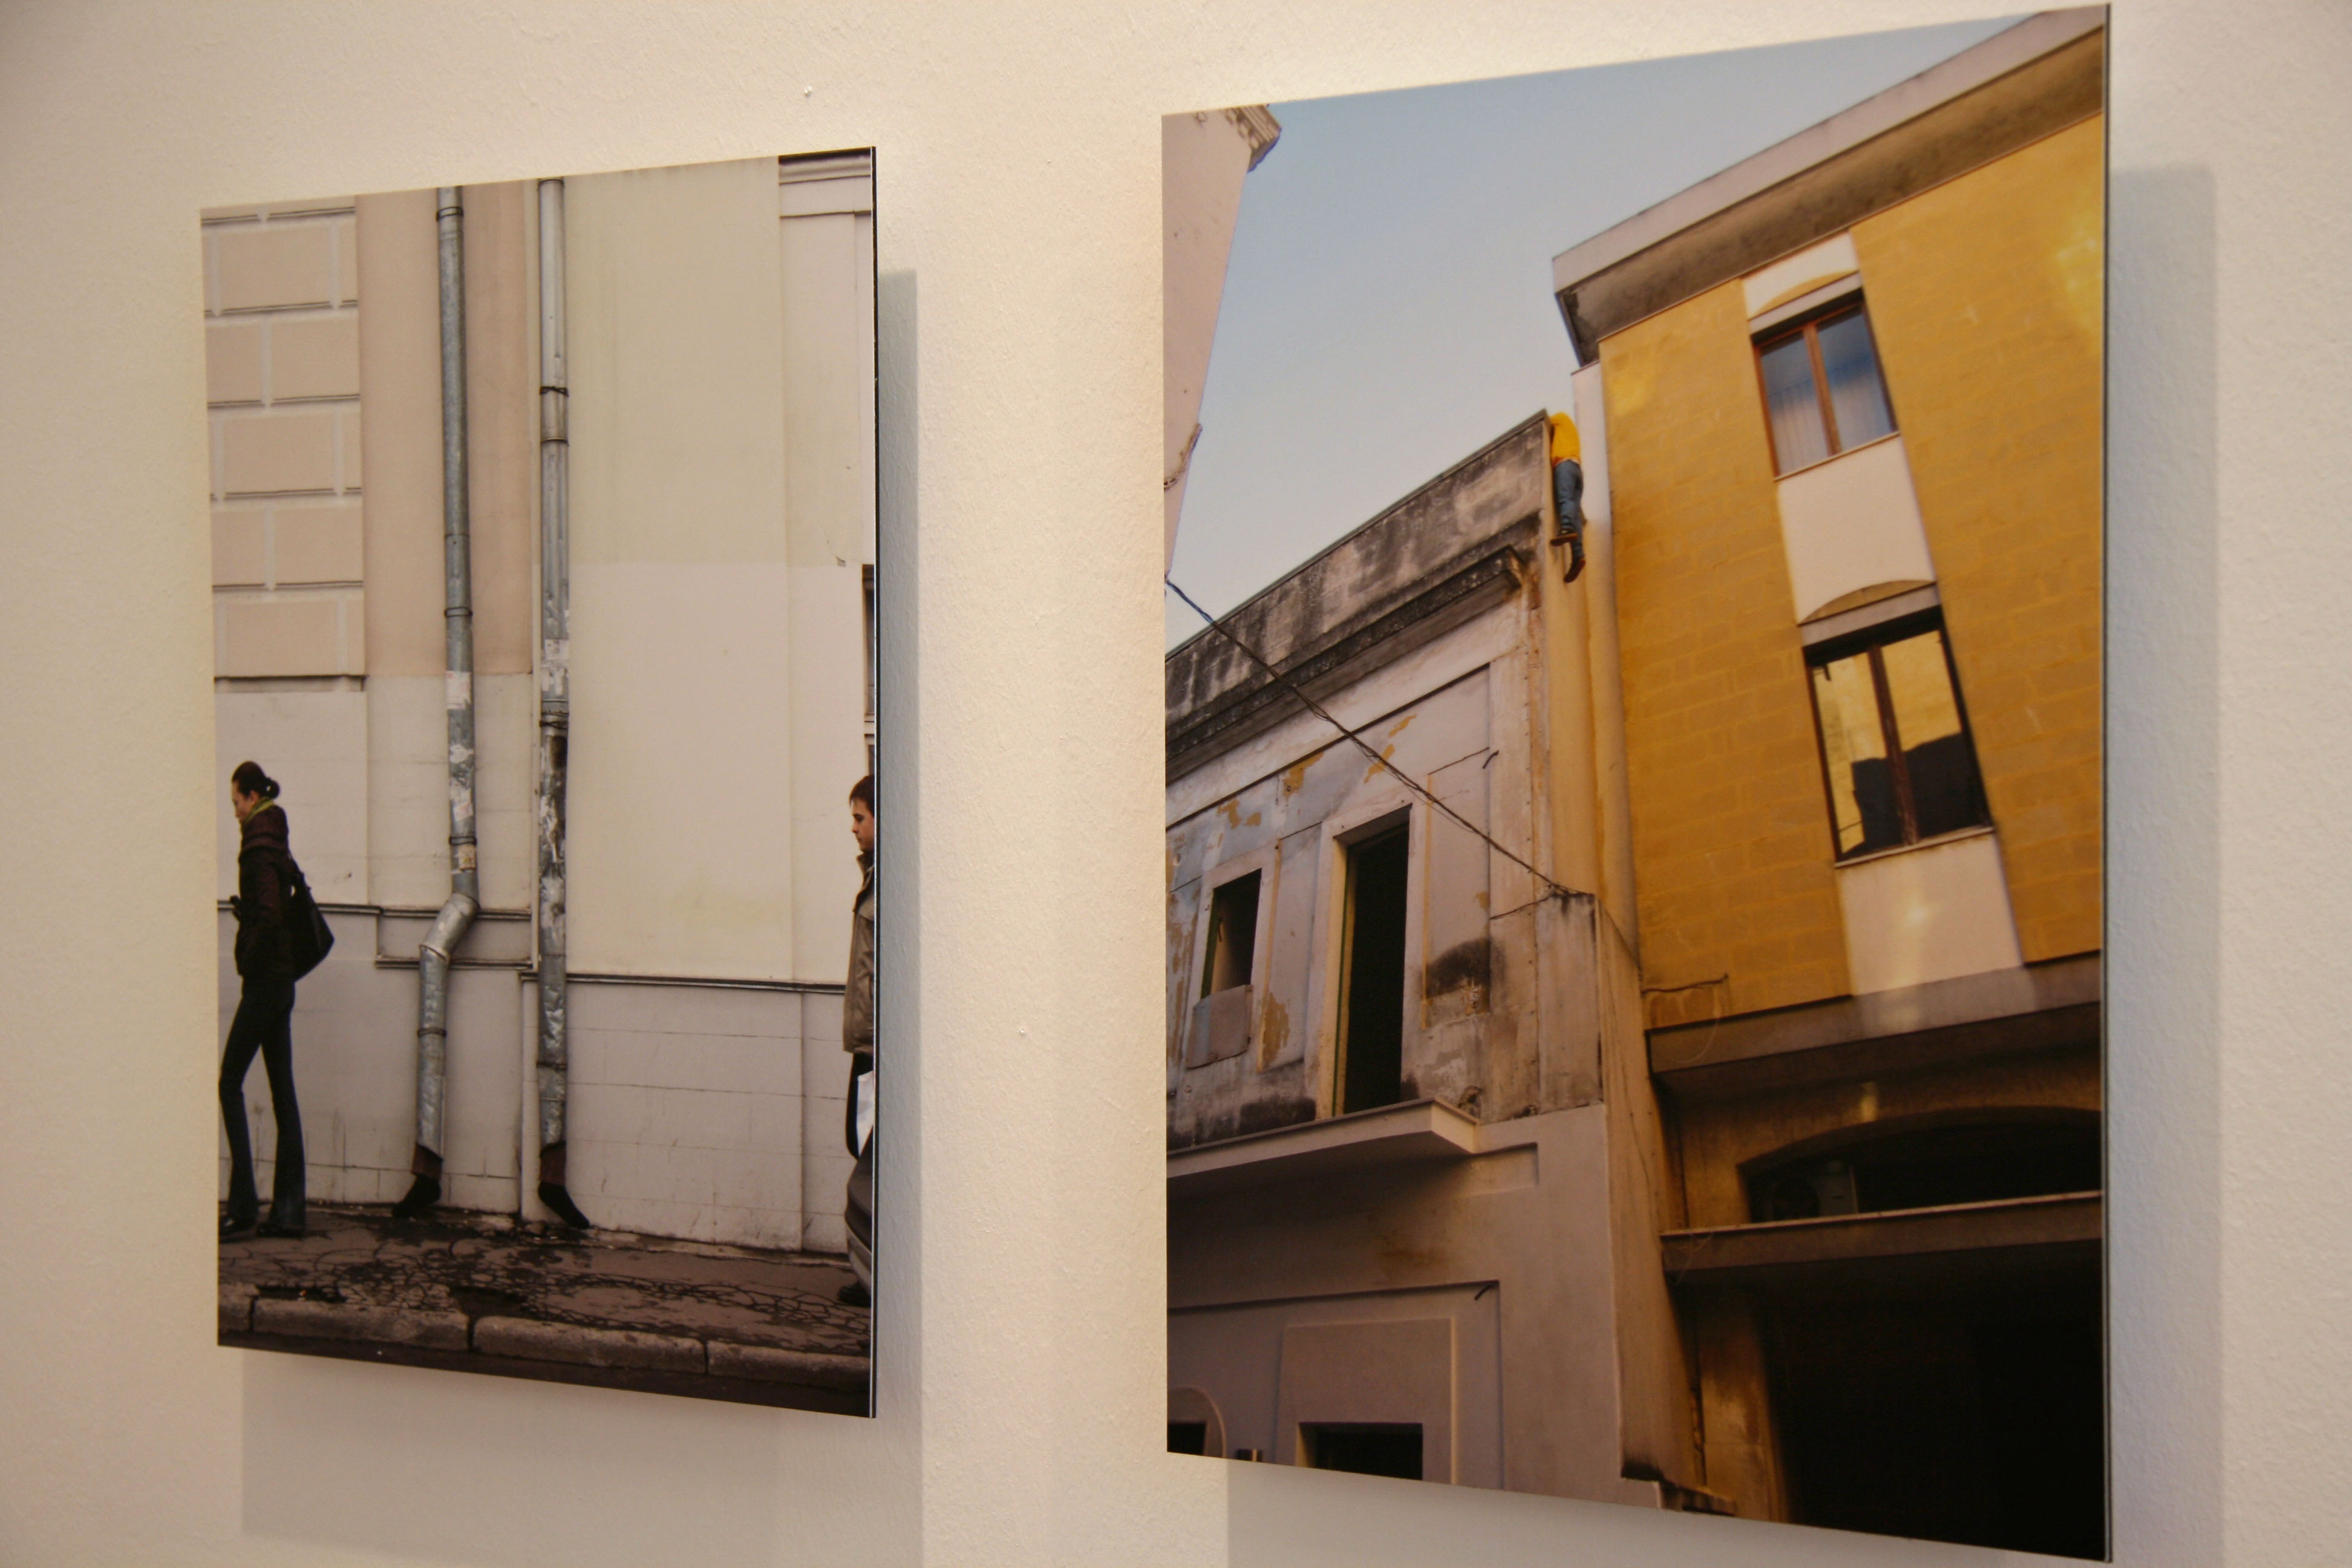 Photographs of street installations by Mark Jenkins - part of the Glazed Paradise exhibition at Gestalten in Berlin